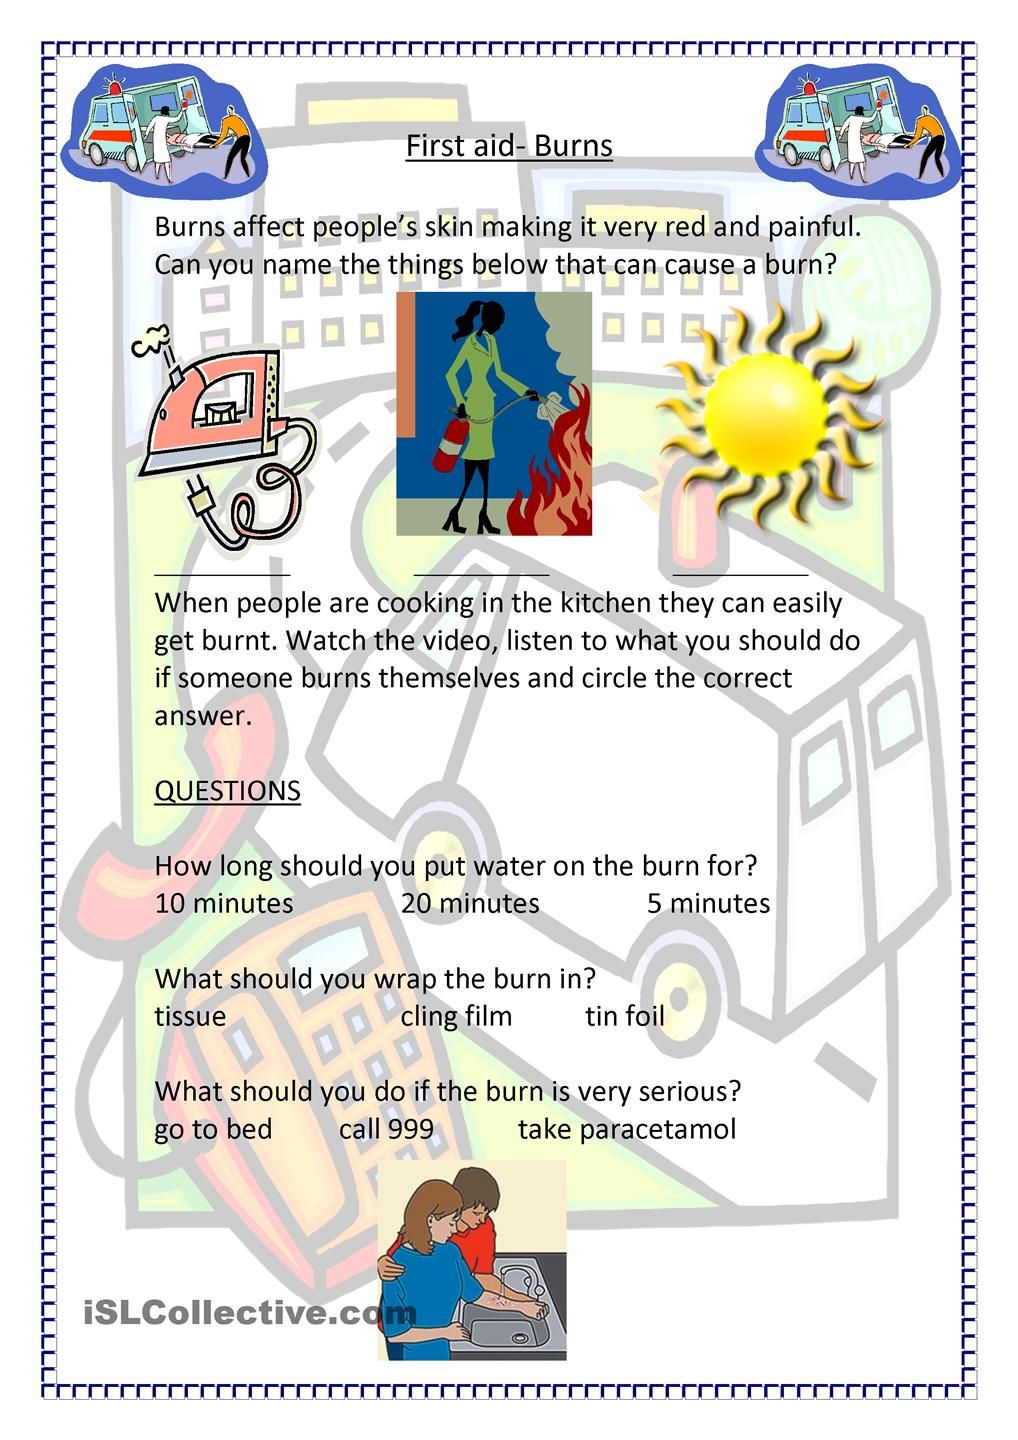 worksheet First Aid Worksheet Answers first aid burns les engels idioom medisch pinterest worksheet free esl printable worksheets made by teachers